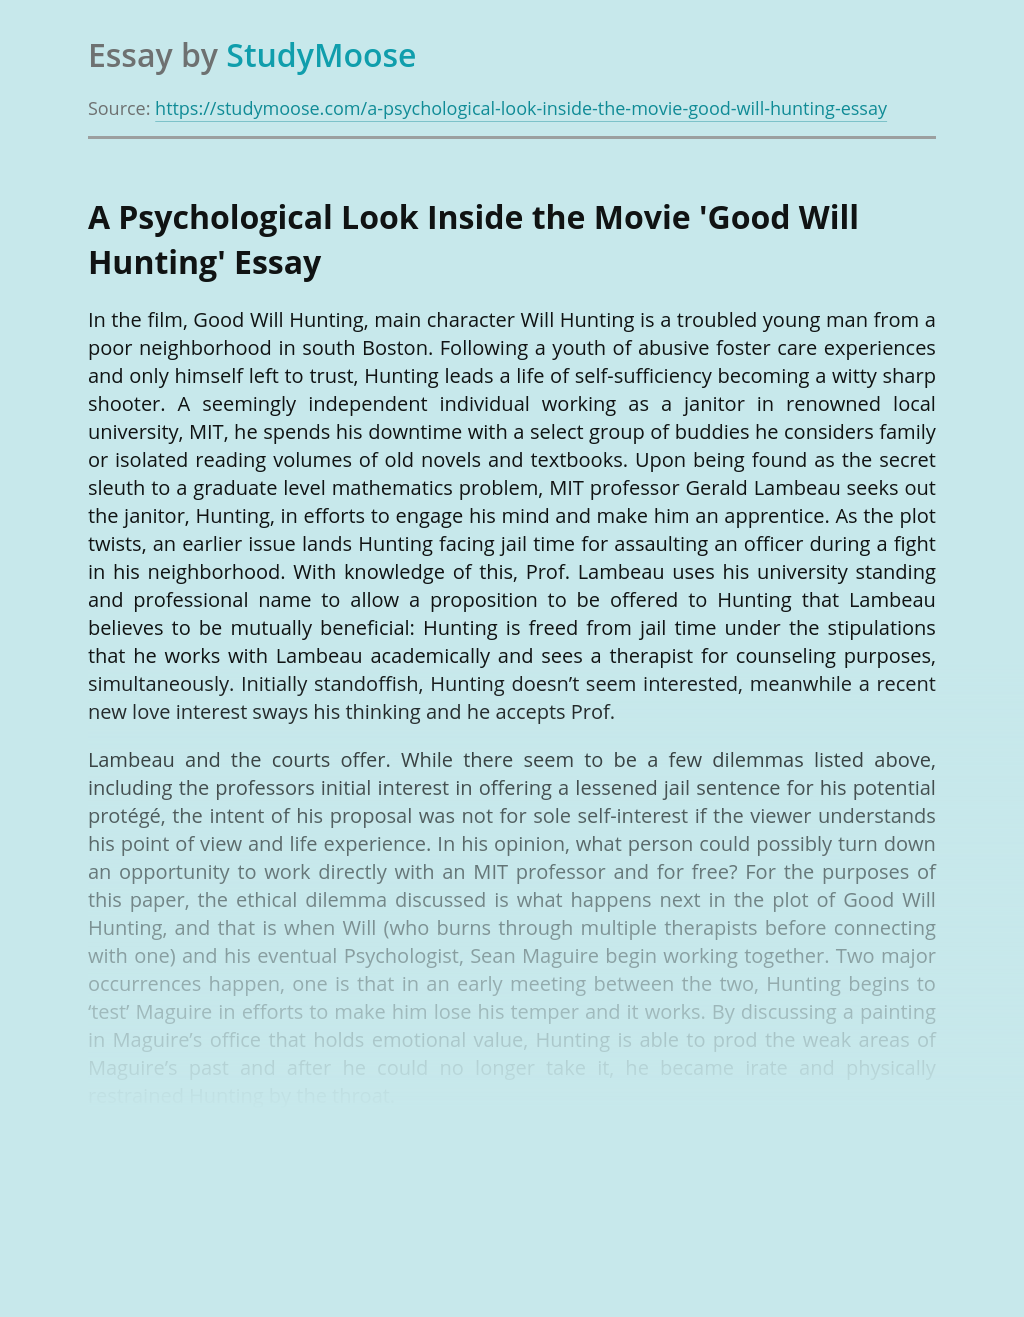 A Psychological Look Inside the Movie'Good Will Hunting'